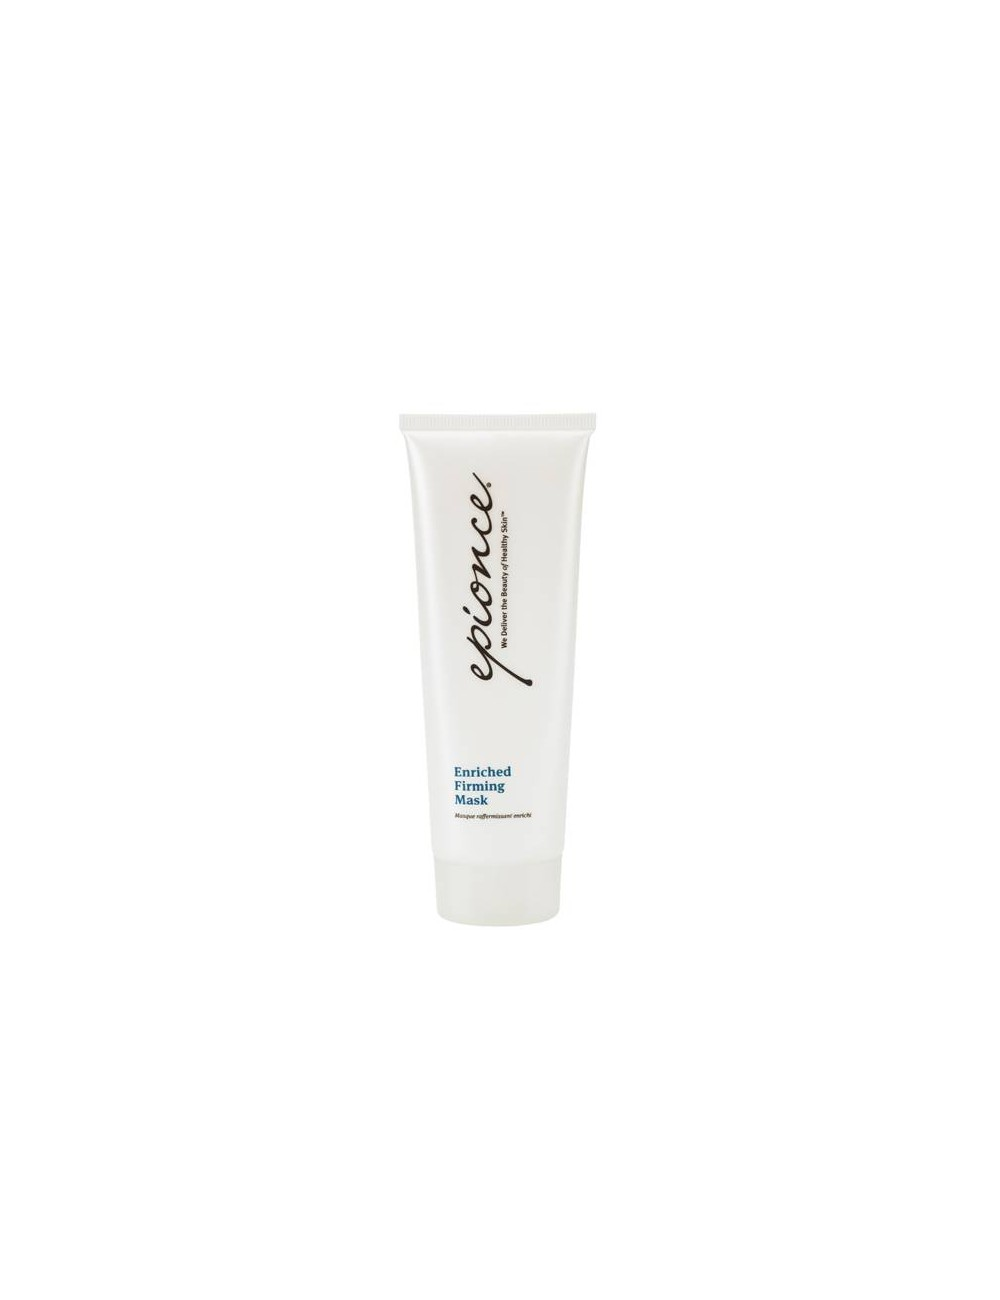 Epionce Enriched Firming Mask 75ml